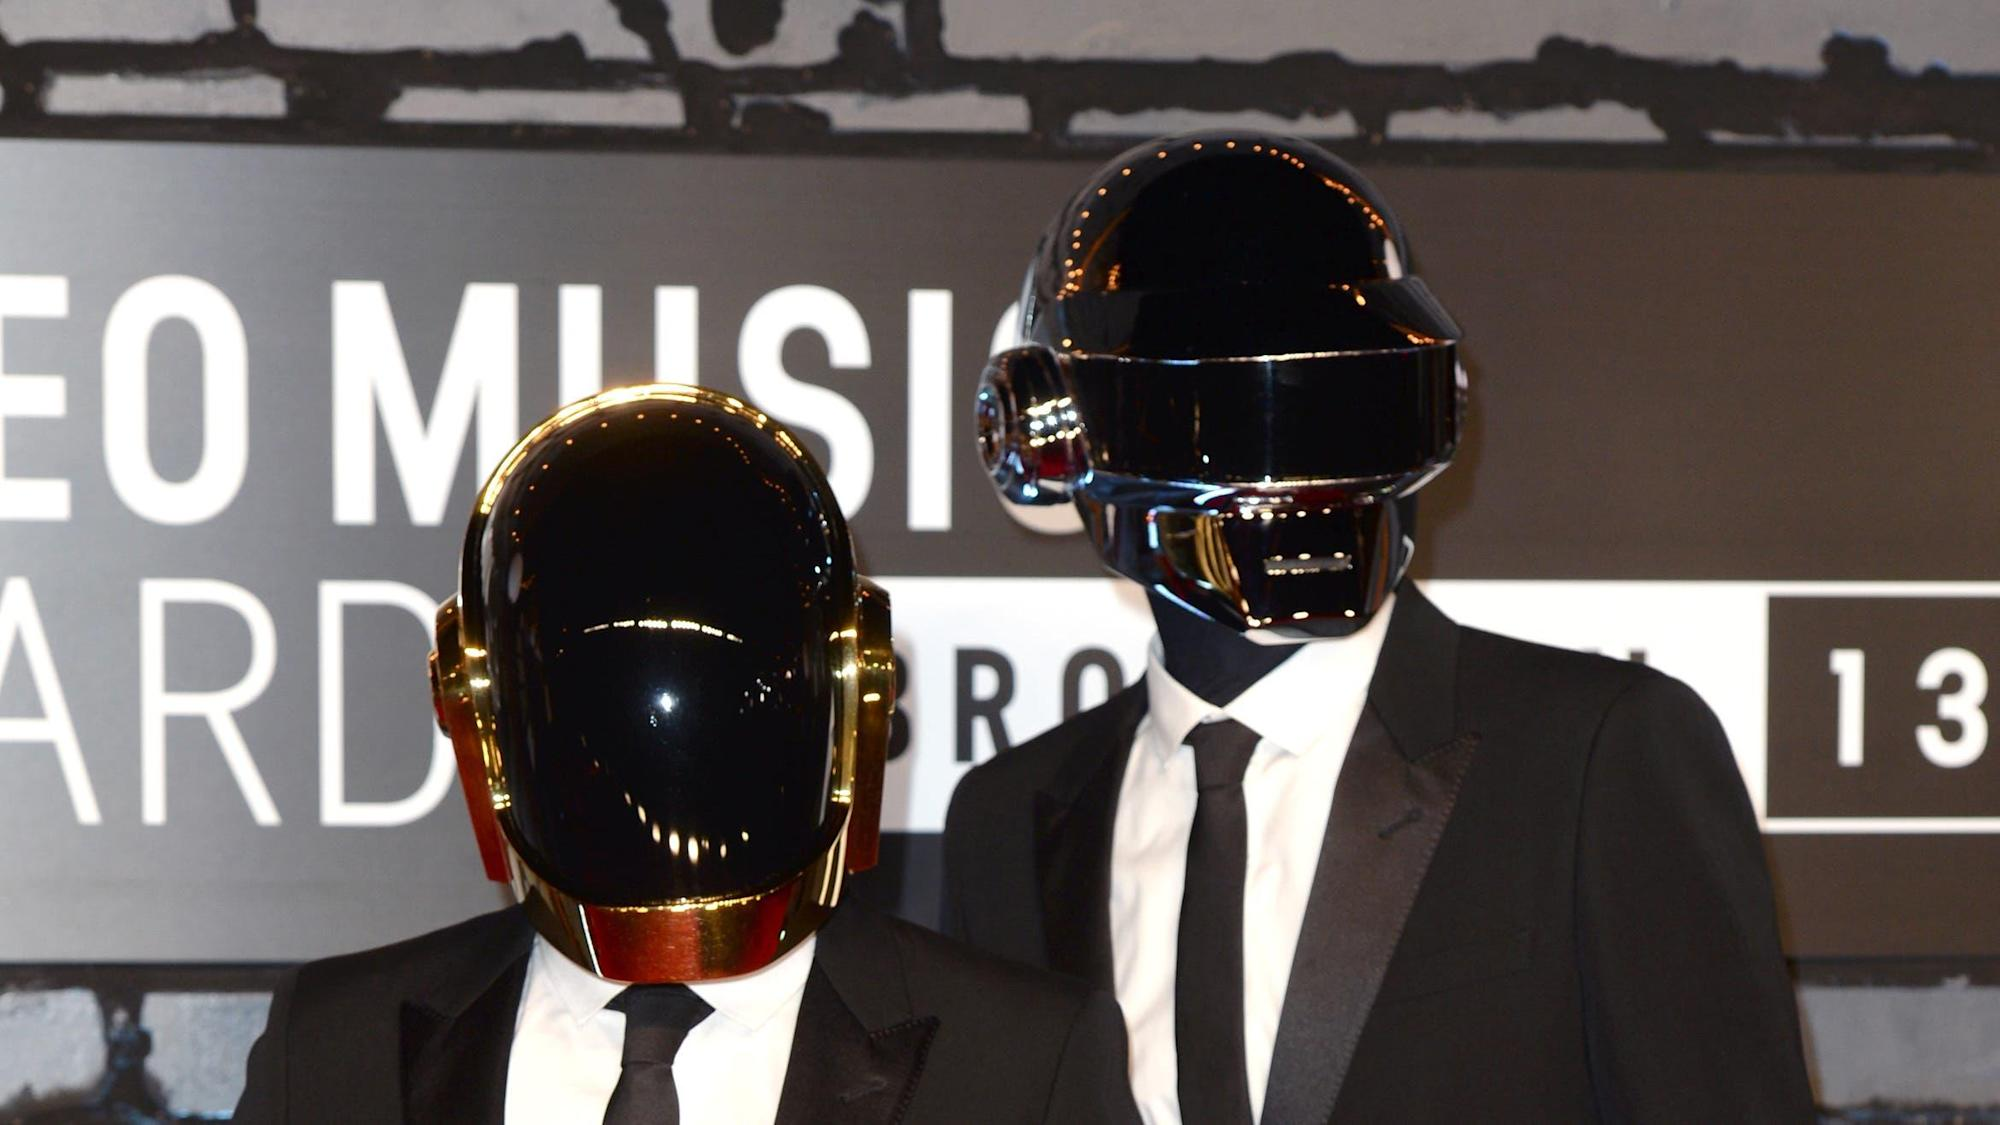 Daft Punk announce split after nearly 30 years